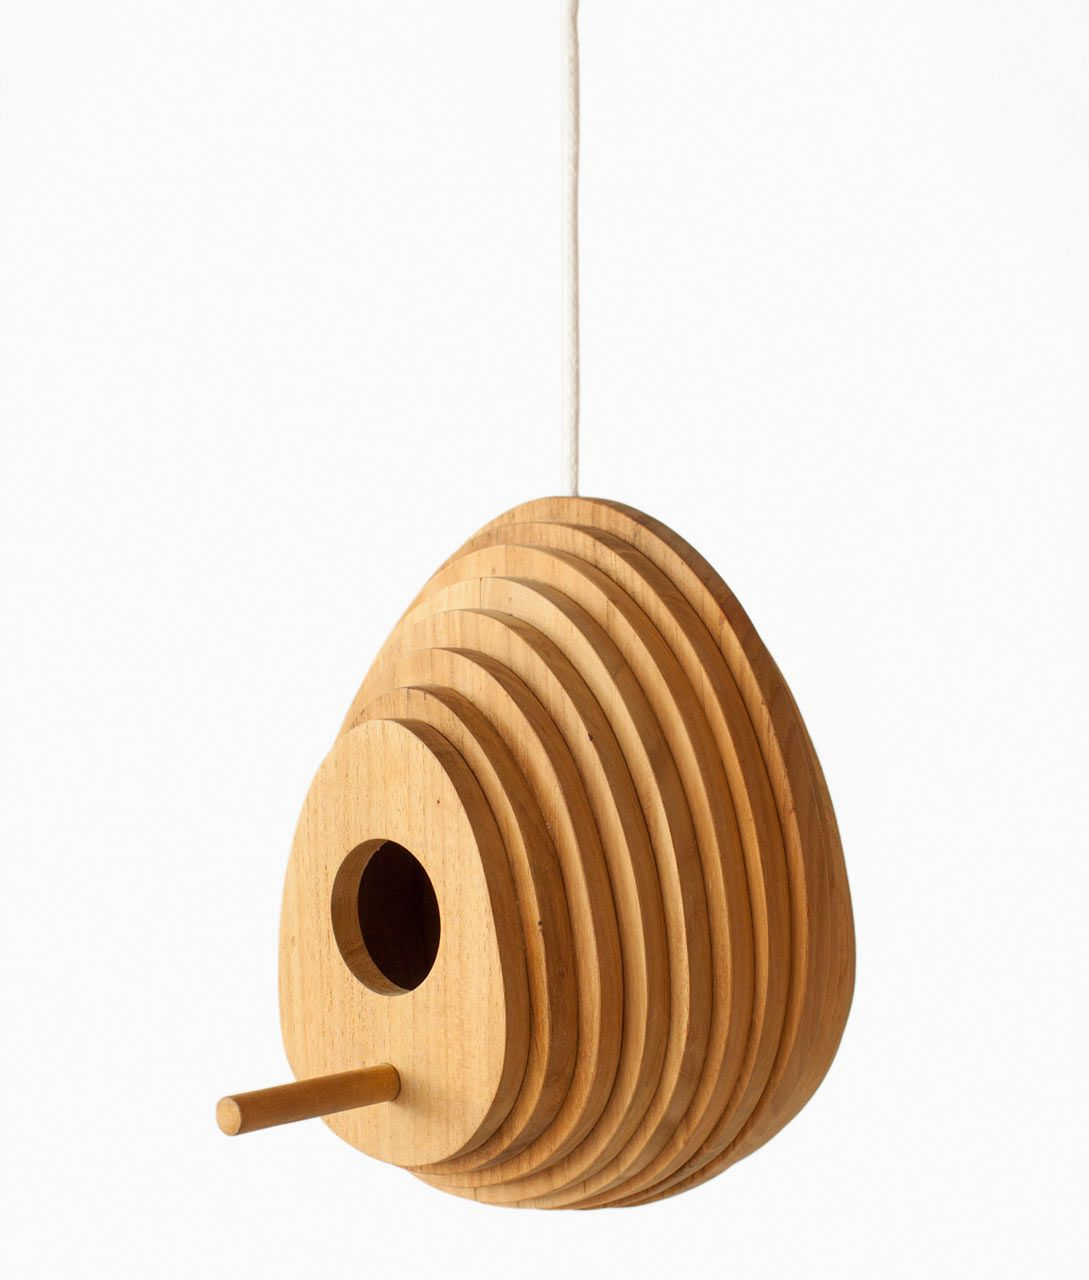 tree ring birdhousejarrod lim for hinika - la mansión del